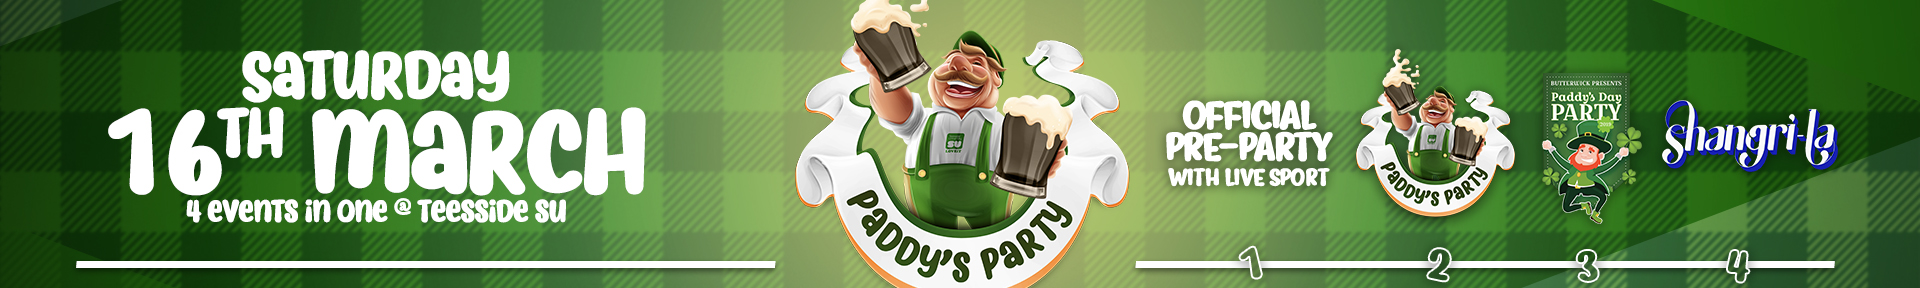 Paddys party 2019 small web